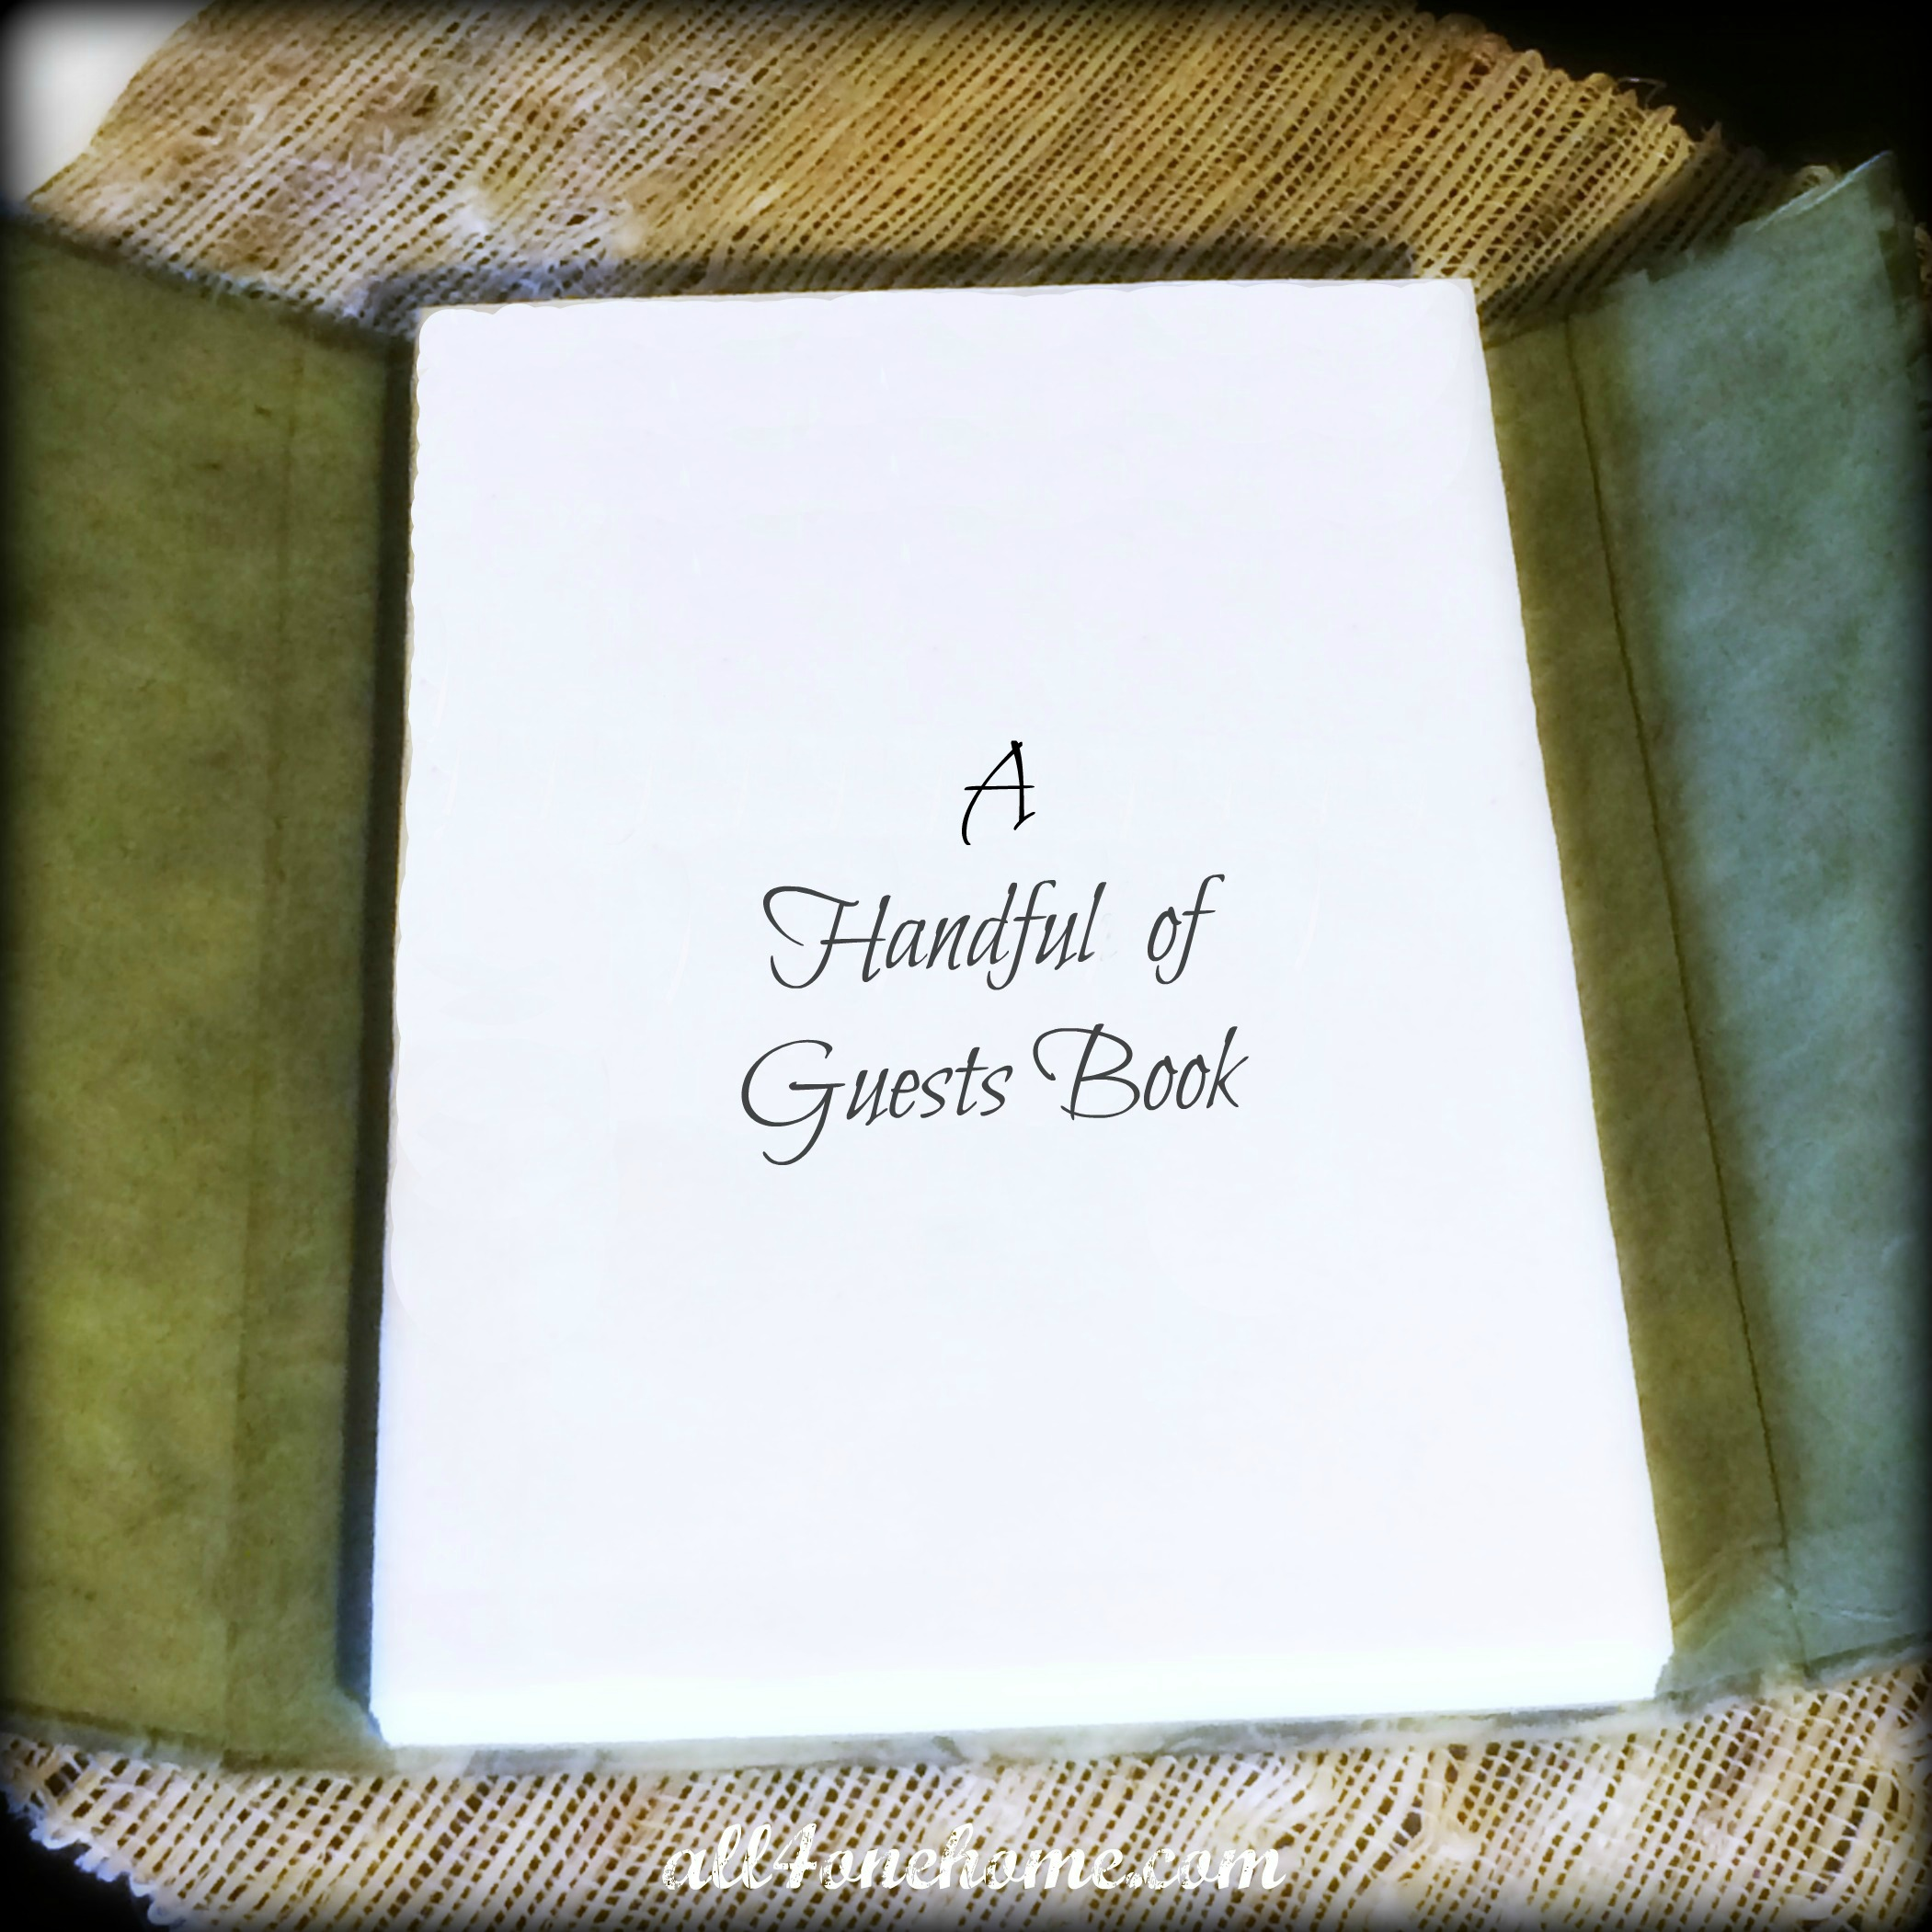 A Handful of Guests Book